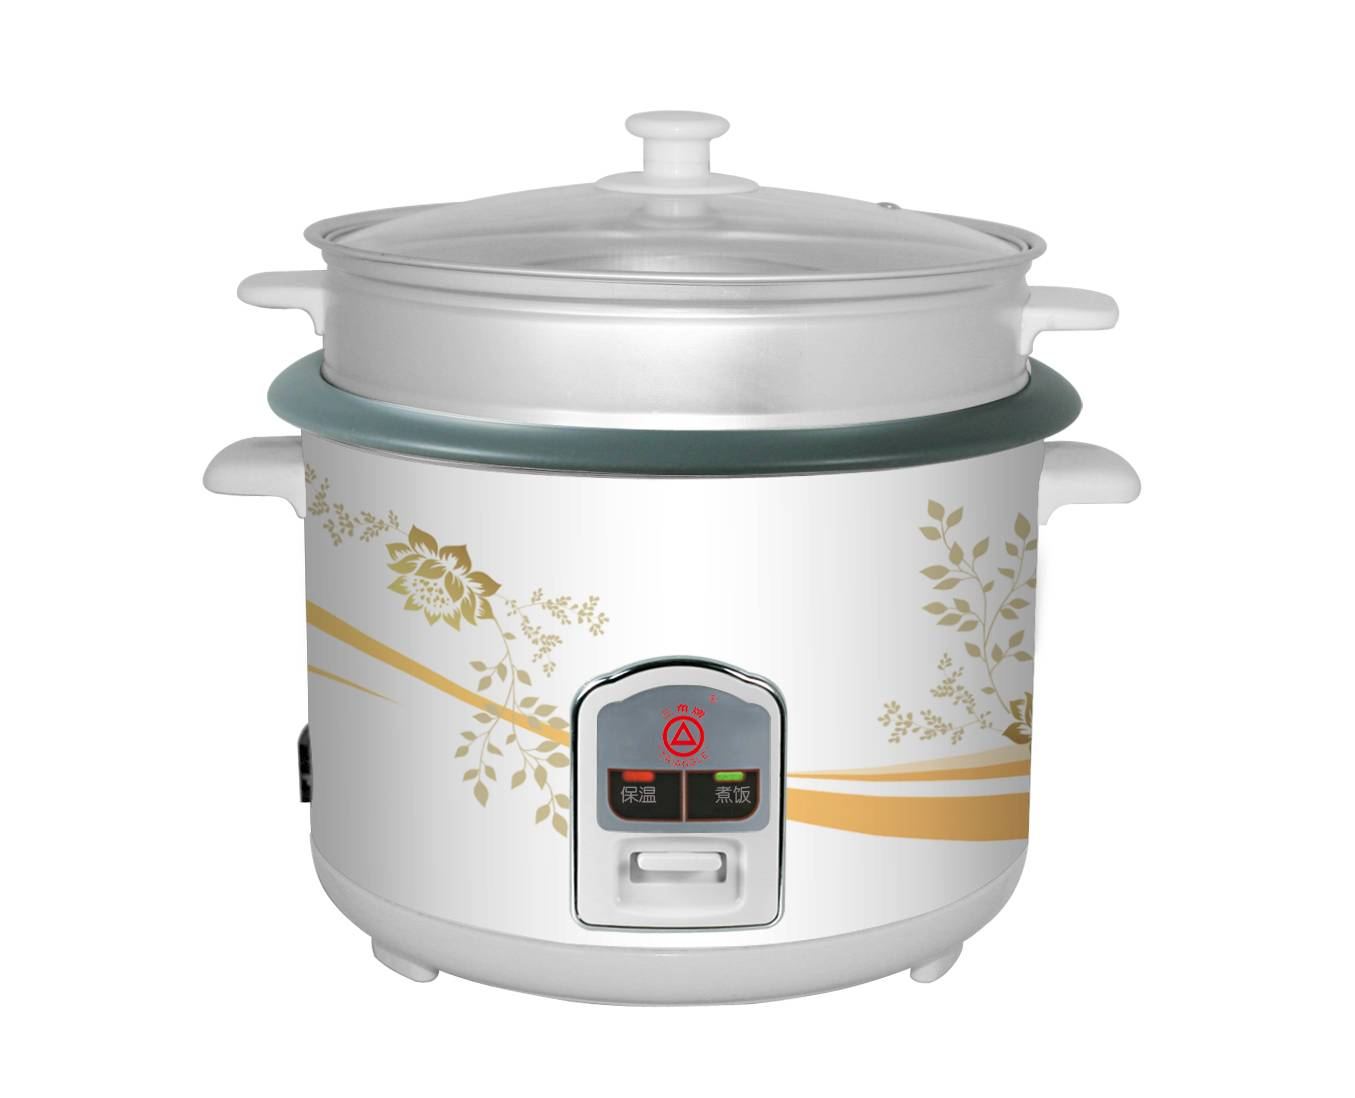 Jointless rice cooker